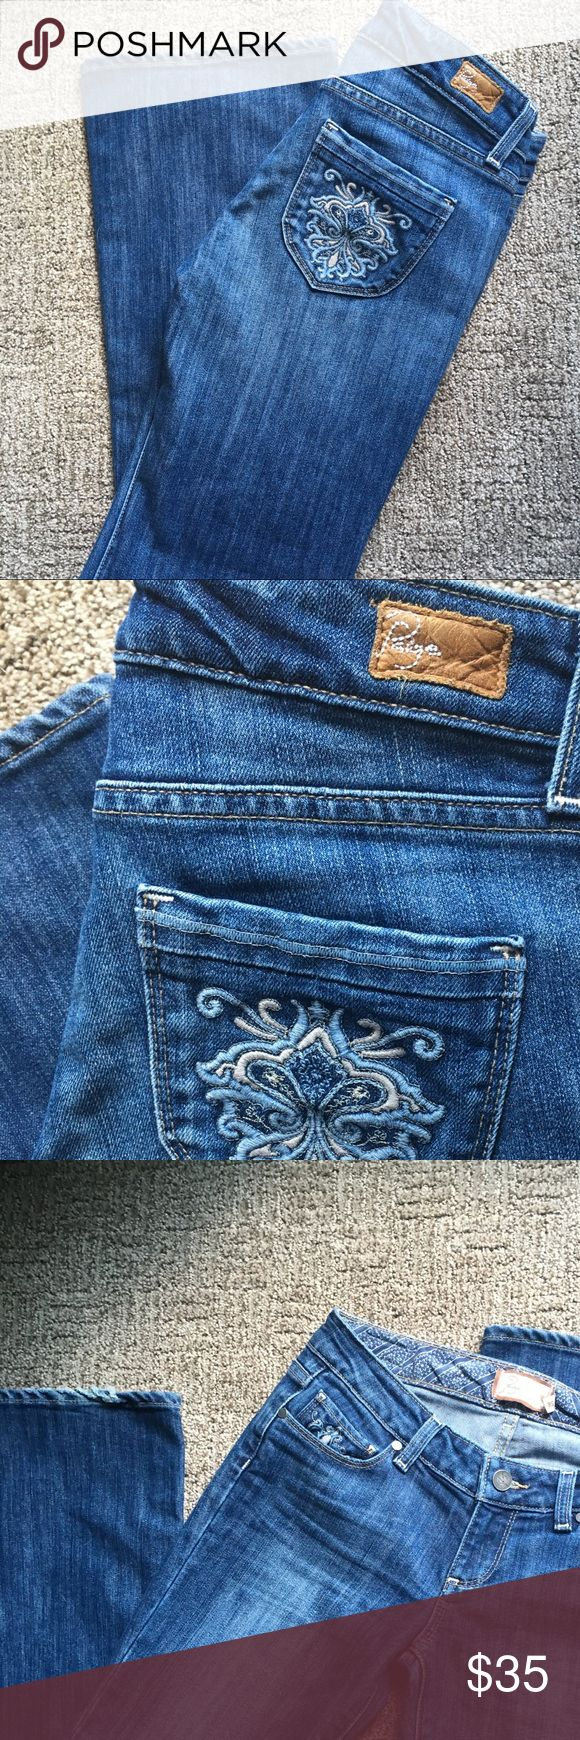 Paige jeans size 26 Paige jeans size 26 with an inseam of 33. In excellent new condition. Thanks for looking. Happy Poshing! 👠👚👕 PAIGE Jeans Flare & Wide Leg